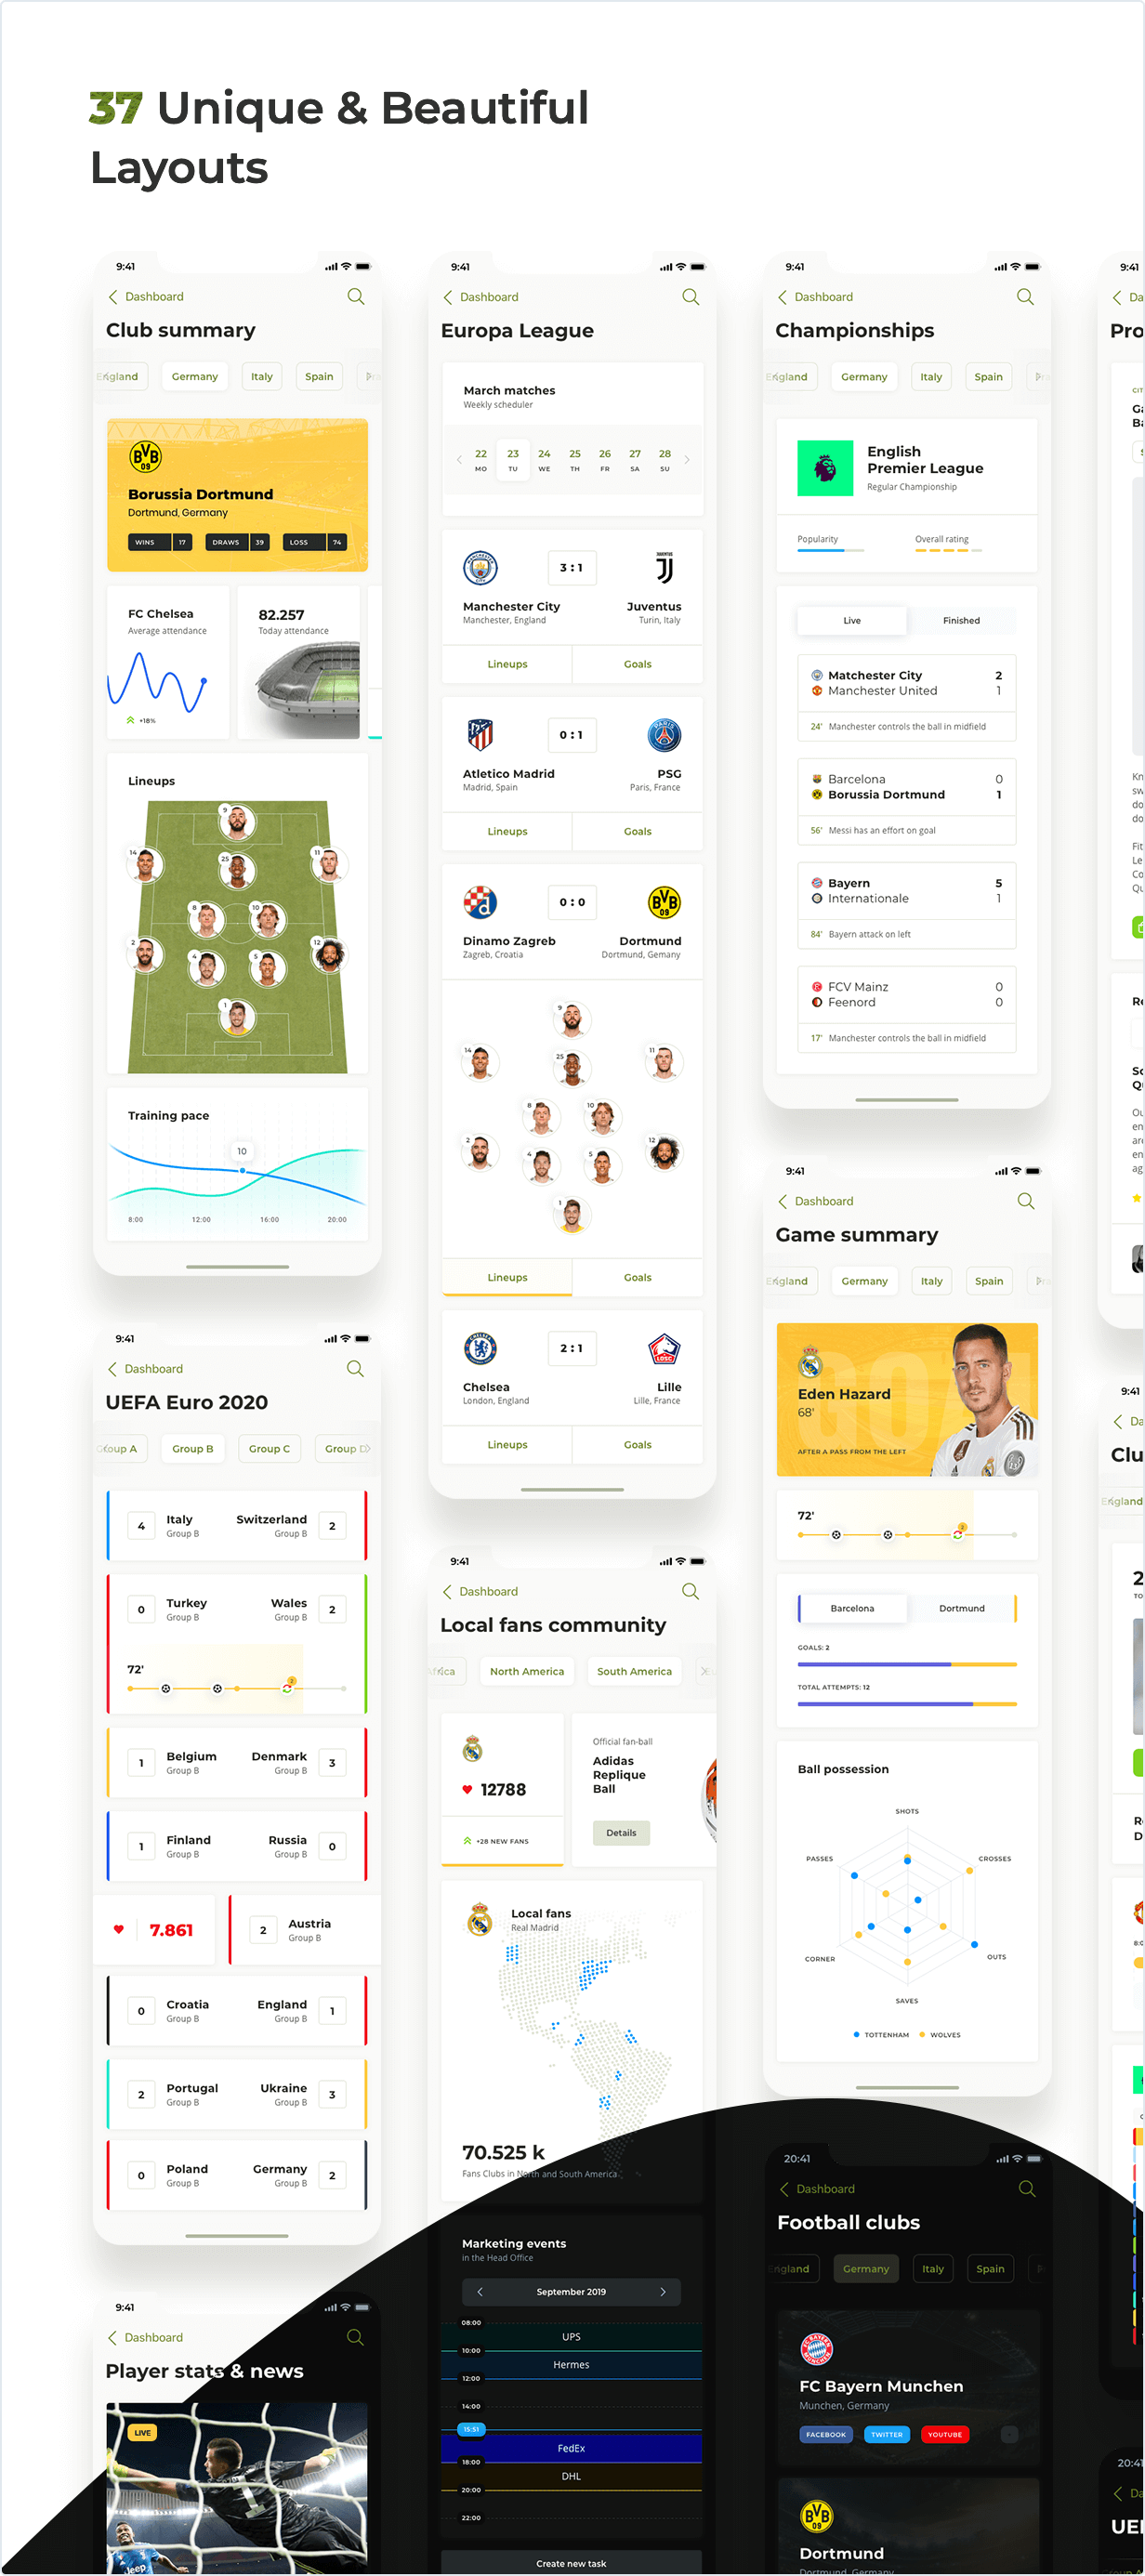 Soccer mobile app is a 37 Unique and Beautiful Layouts